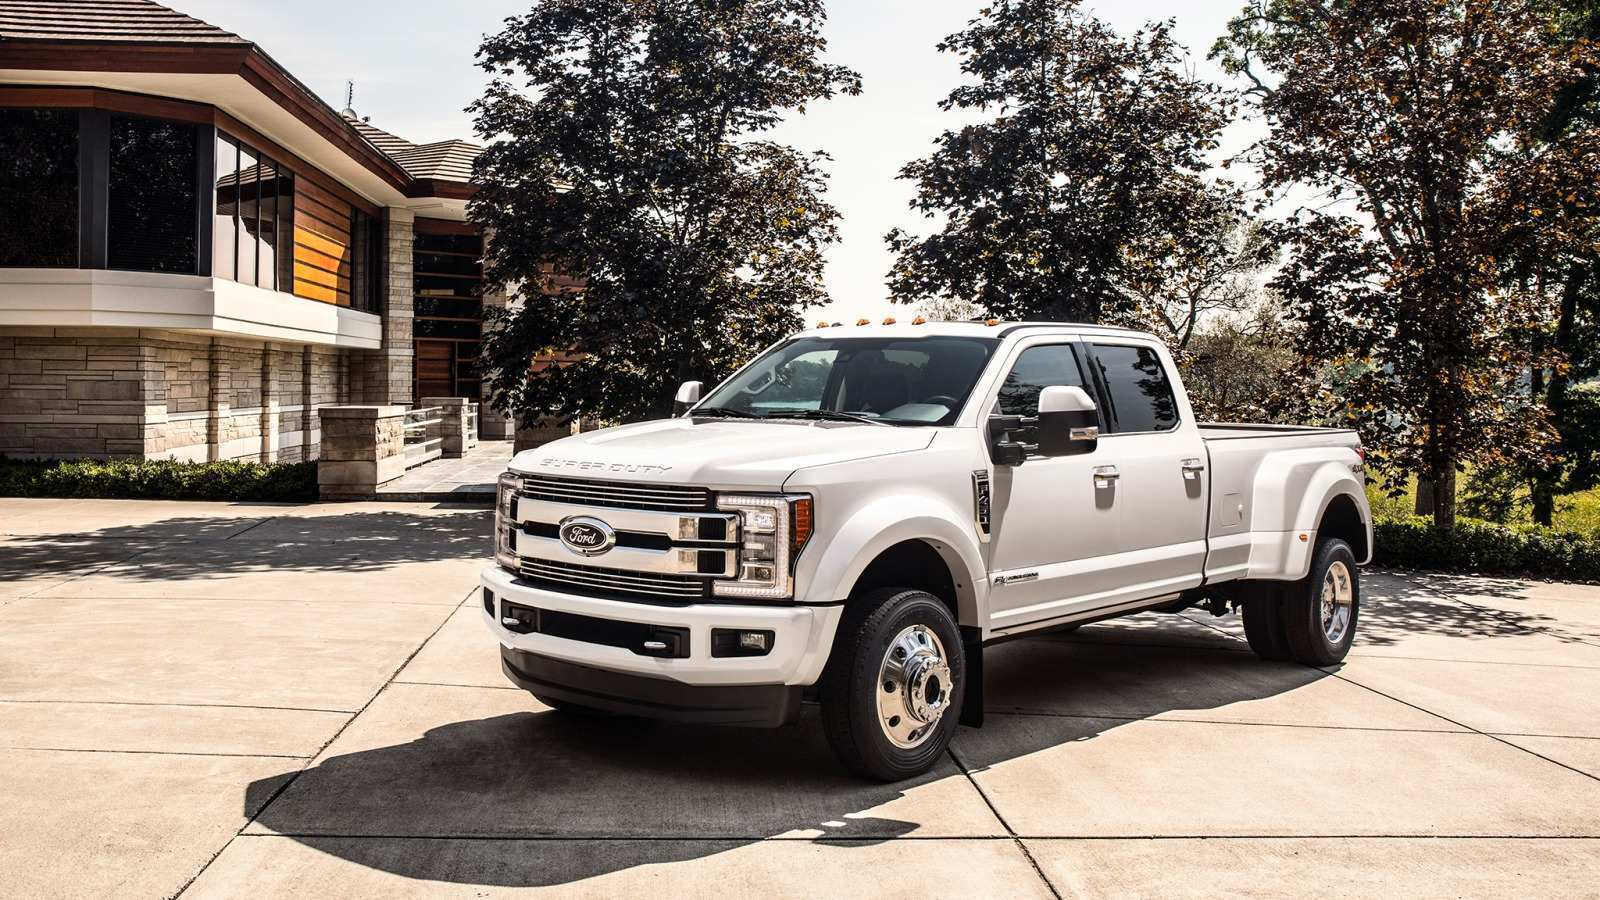 91 Great 2019 Ford F 450 Redesign and Concept with 2019 Ford F 450